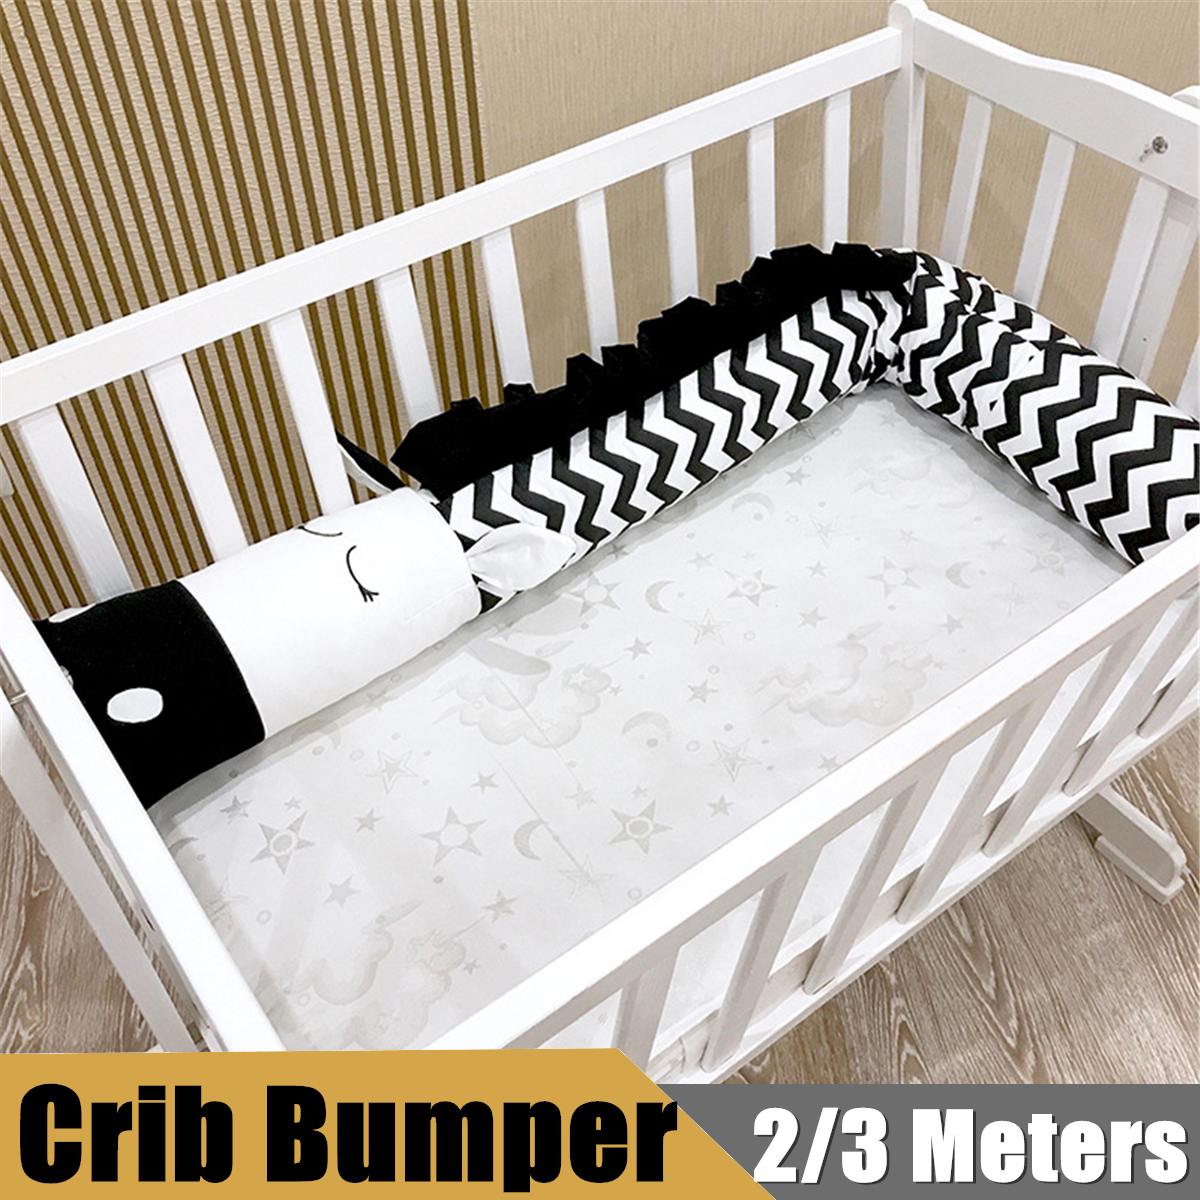 Medium Of Mesh Crib Bumper